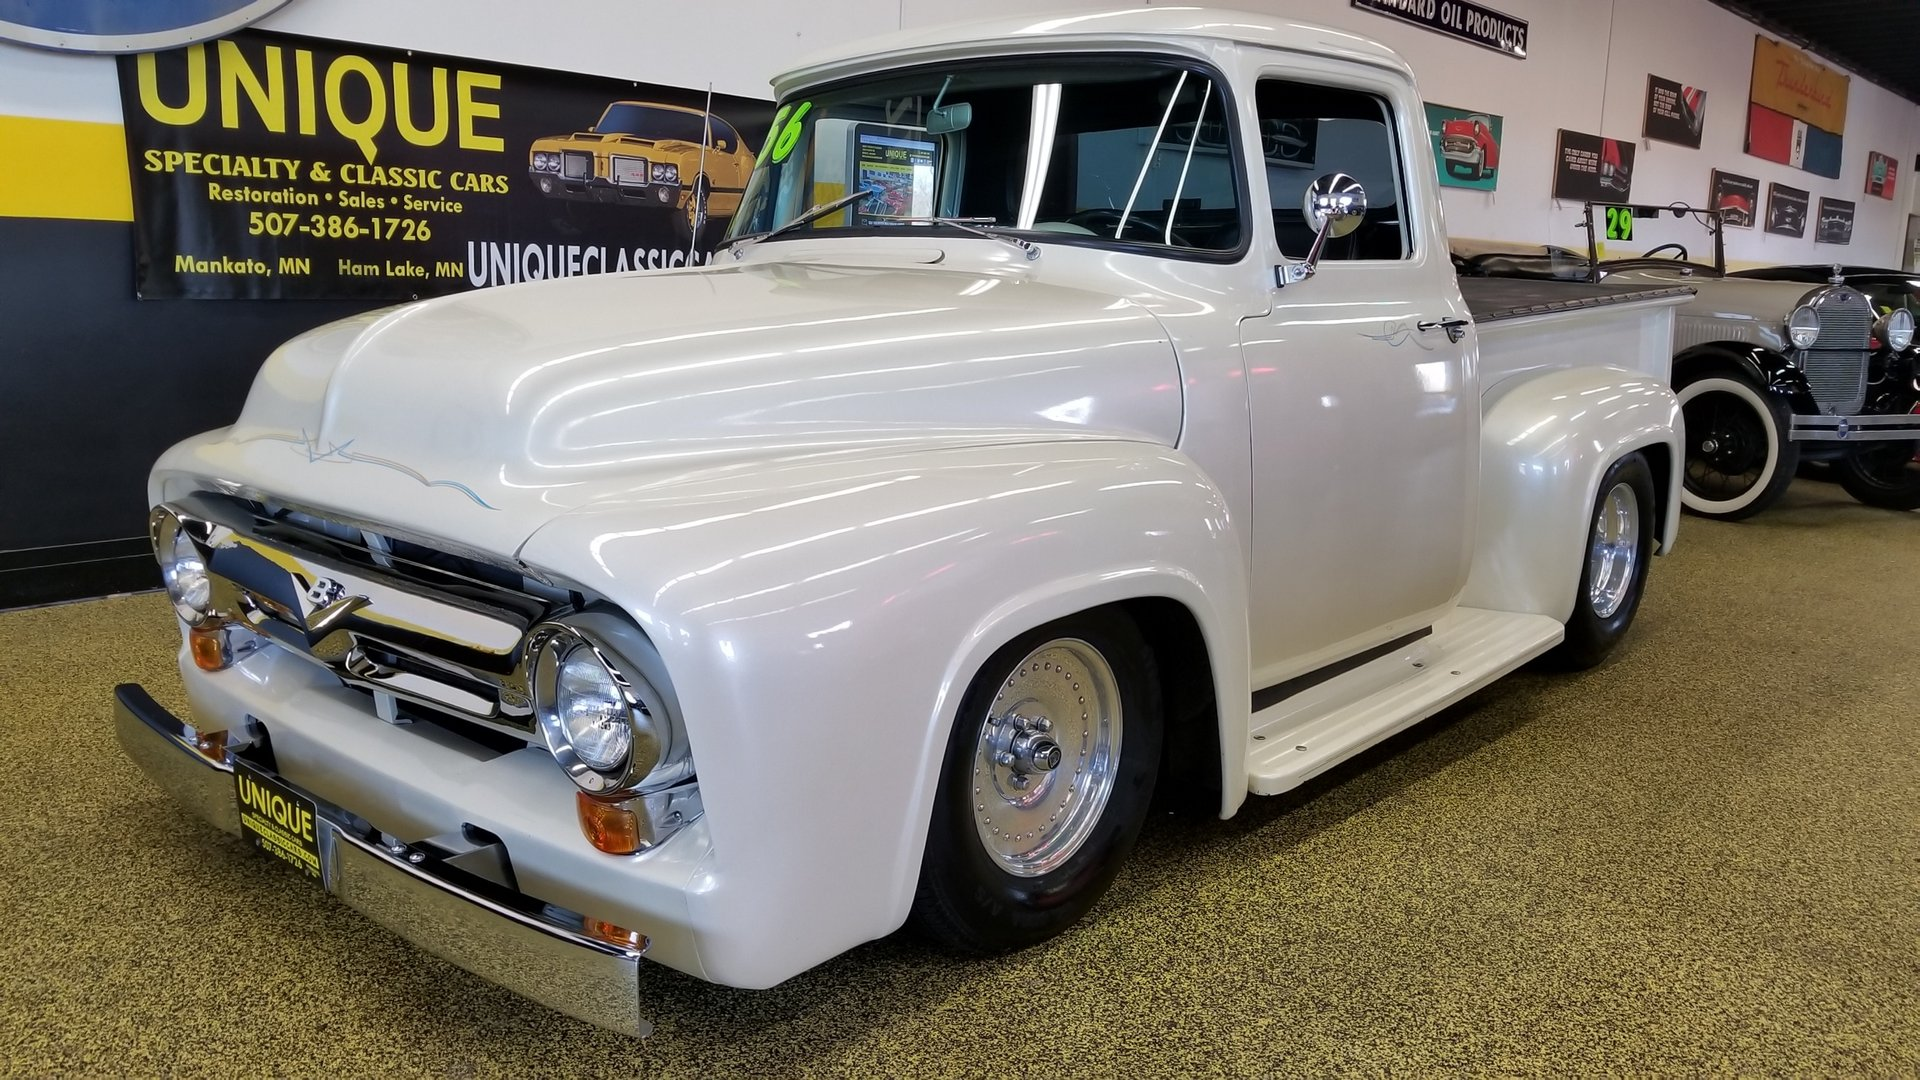 1956 Ford F100 Pickup Street Rod For Sale 107375 Mcg 1955 Power Steering Truck